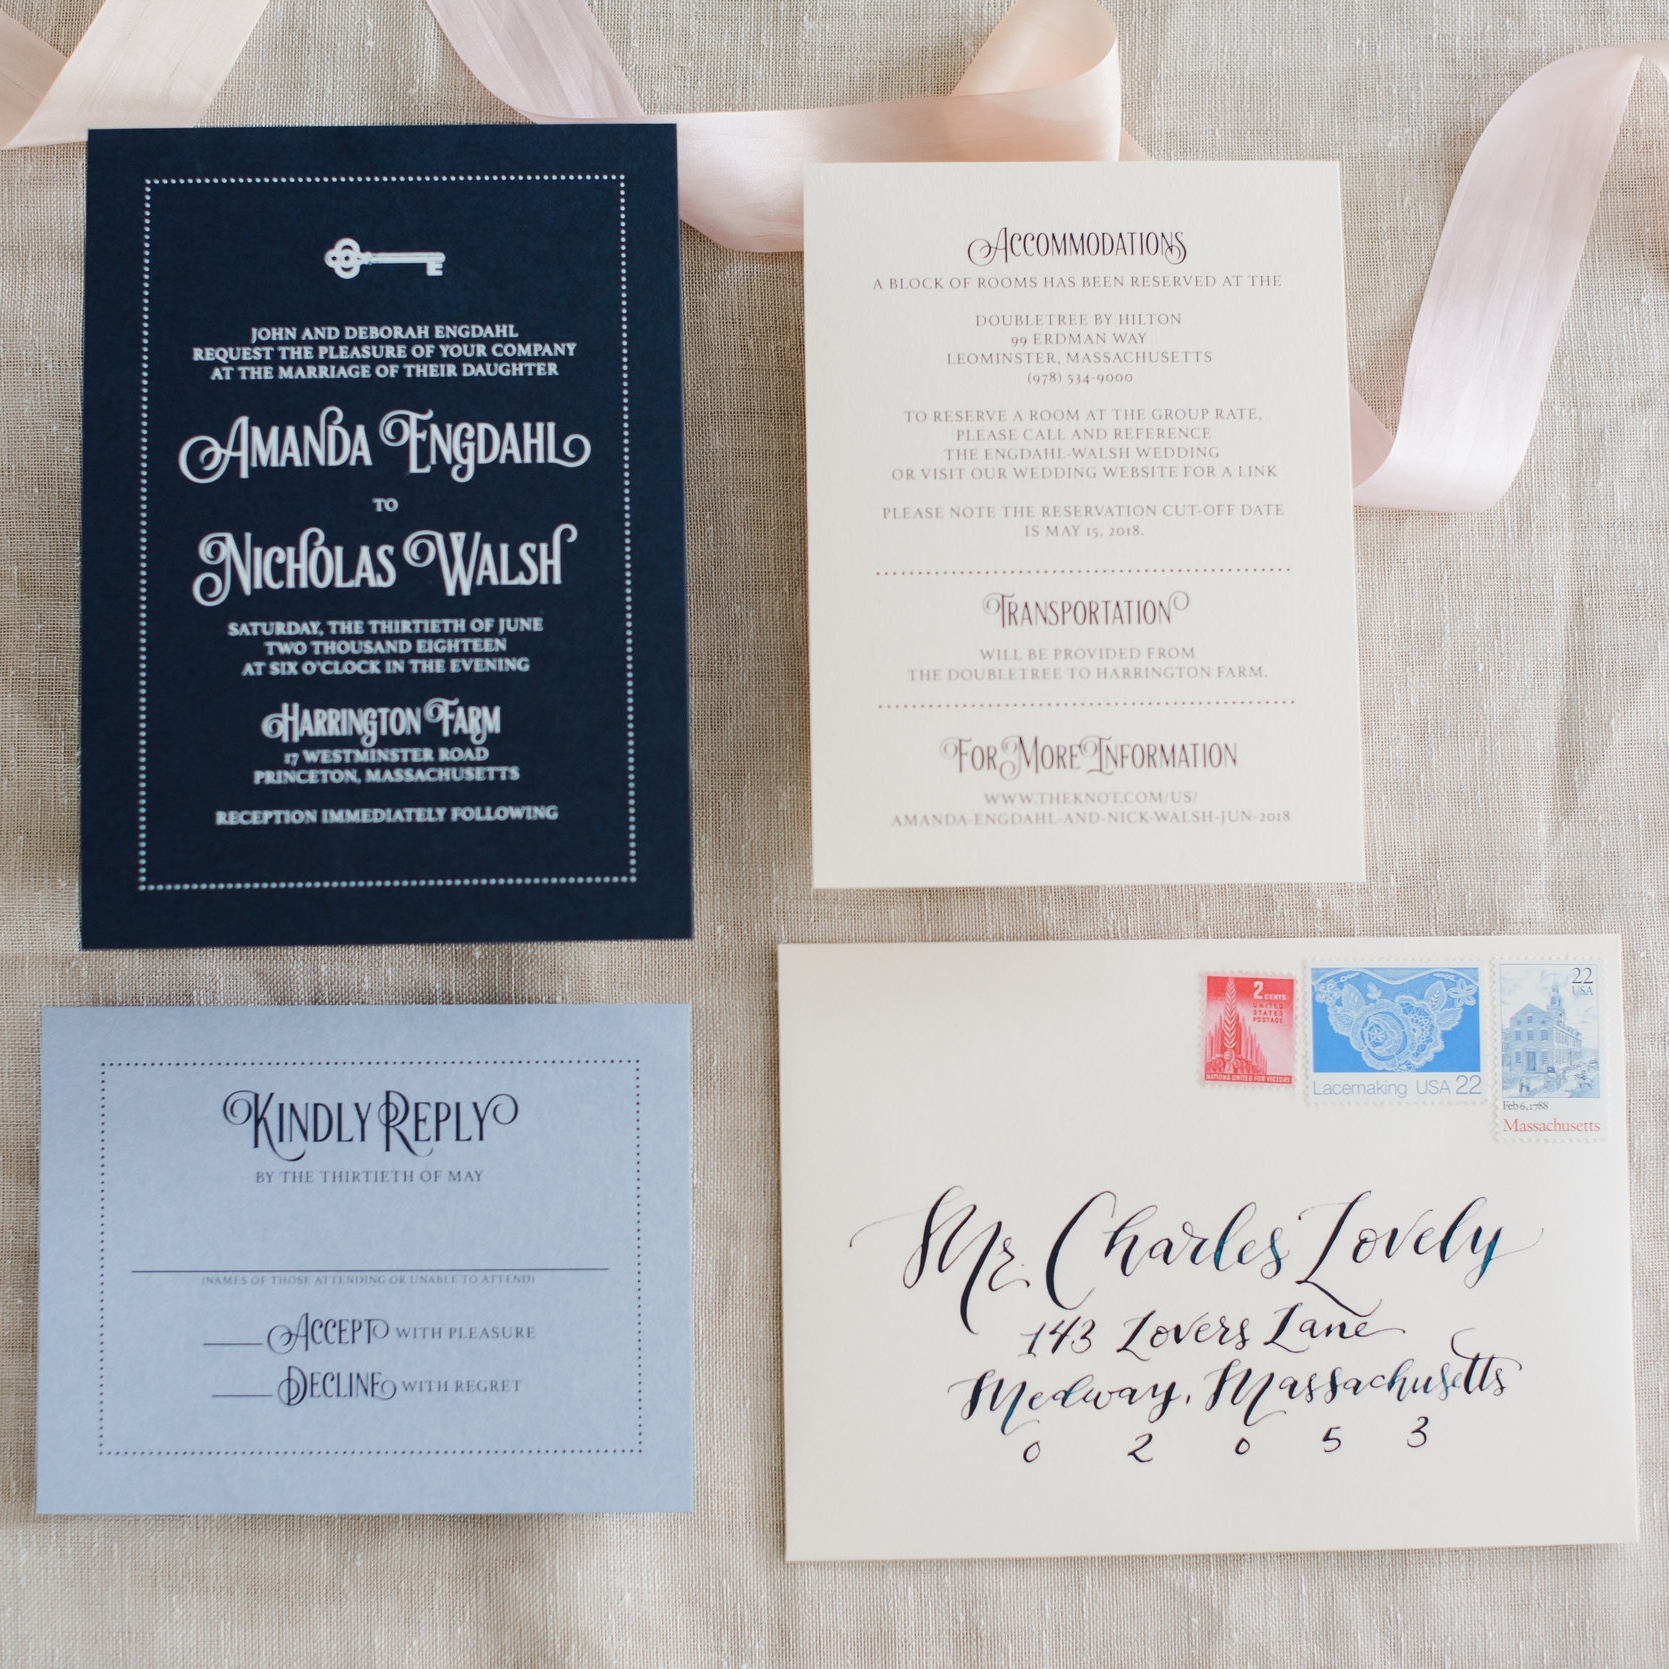 NAVY AND WHITE KEY MODERN WEDDING INVITATIONS